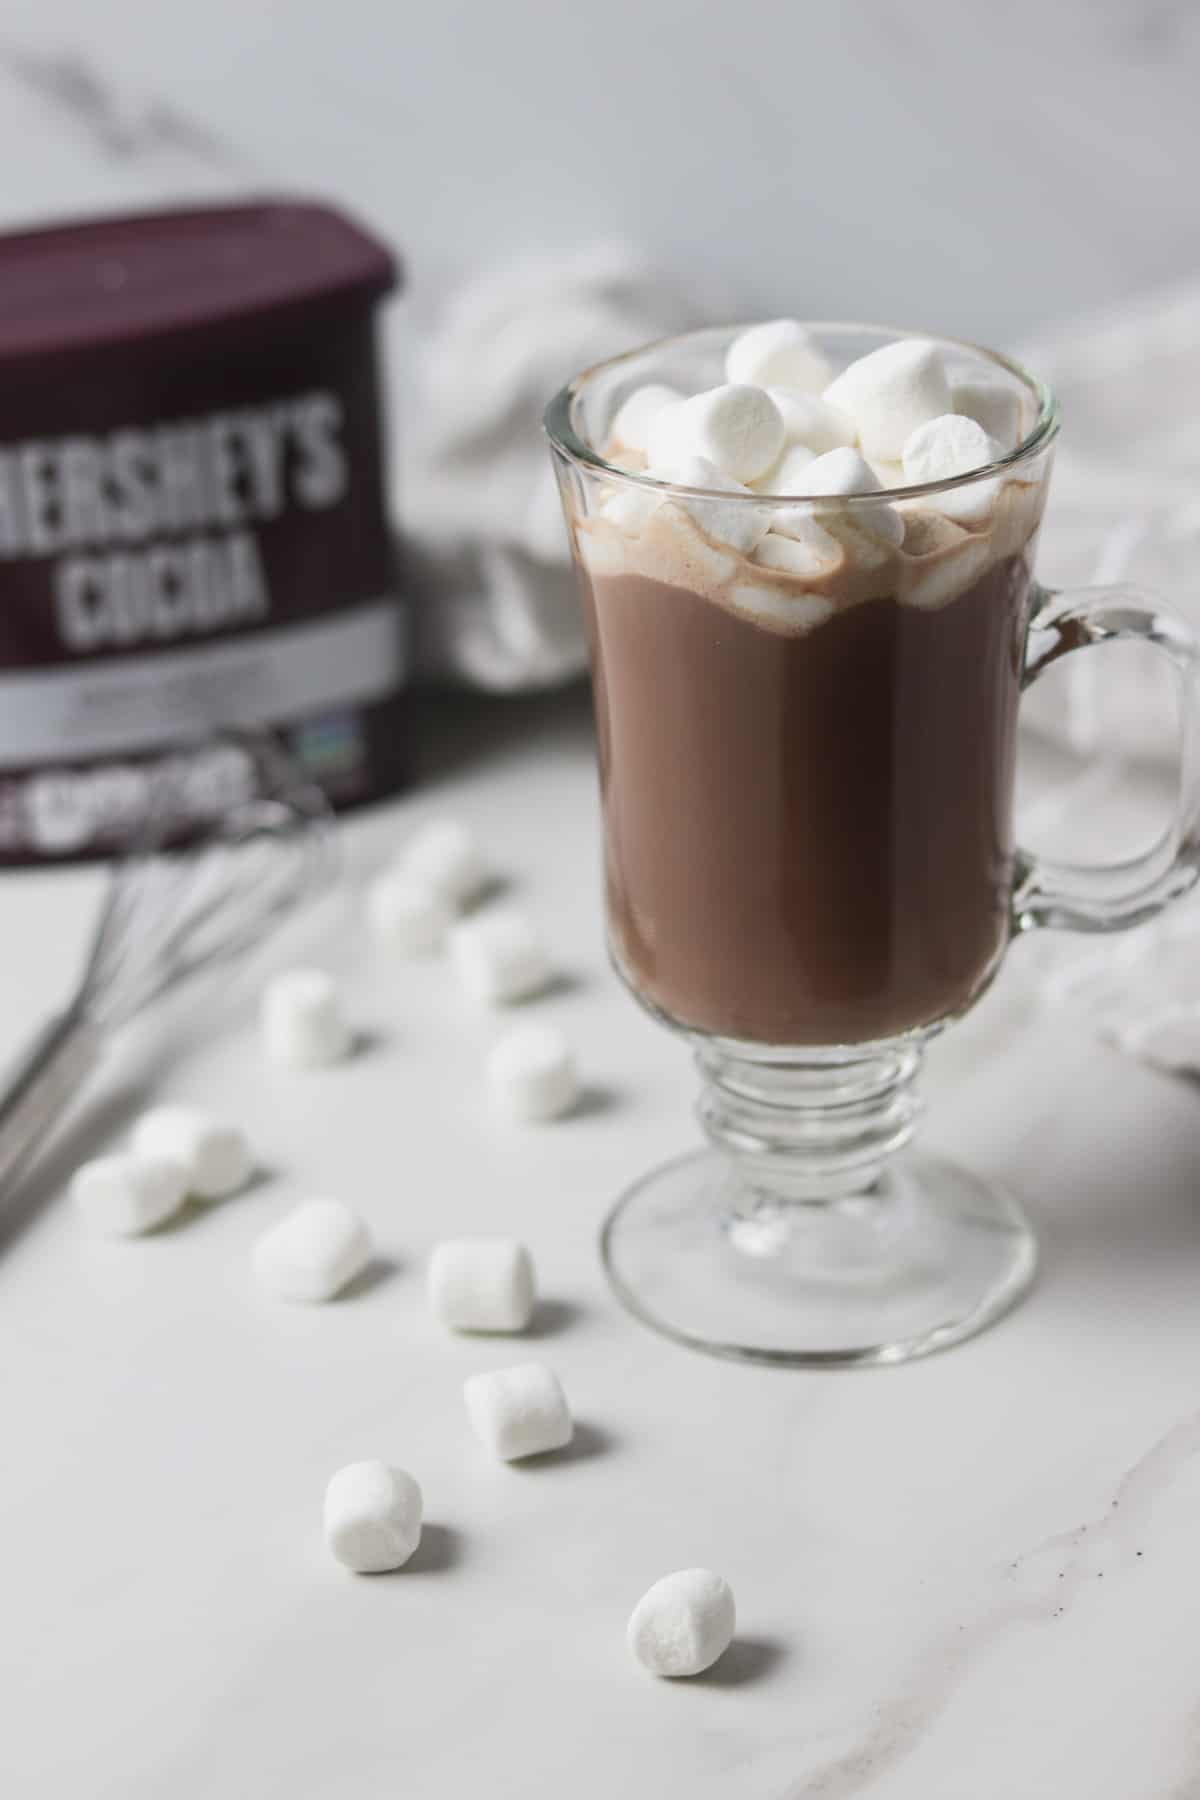 sugar-free hot cocoa with marshmallows in a clear glass